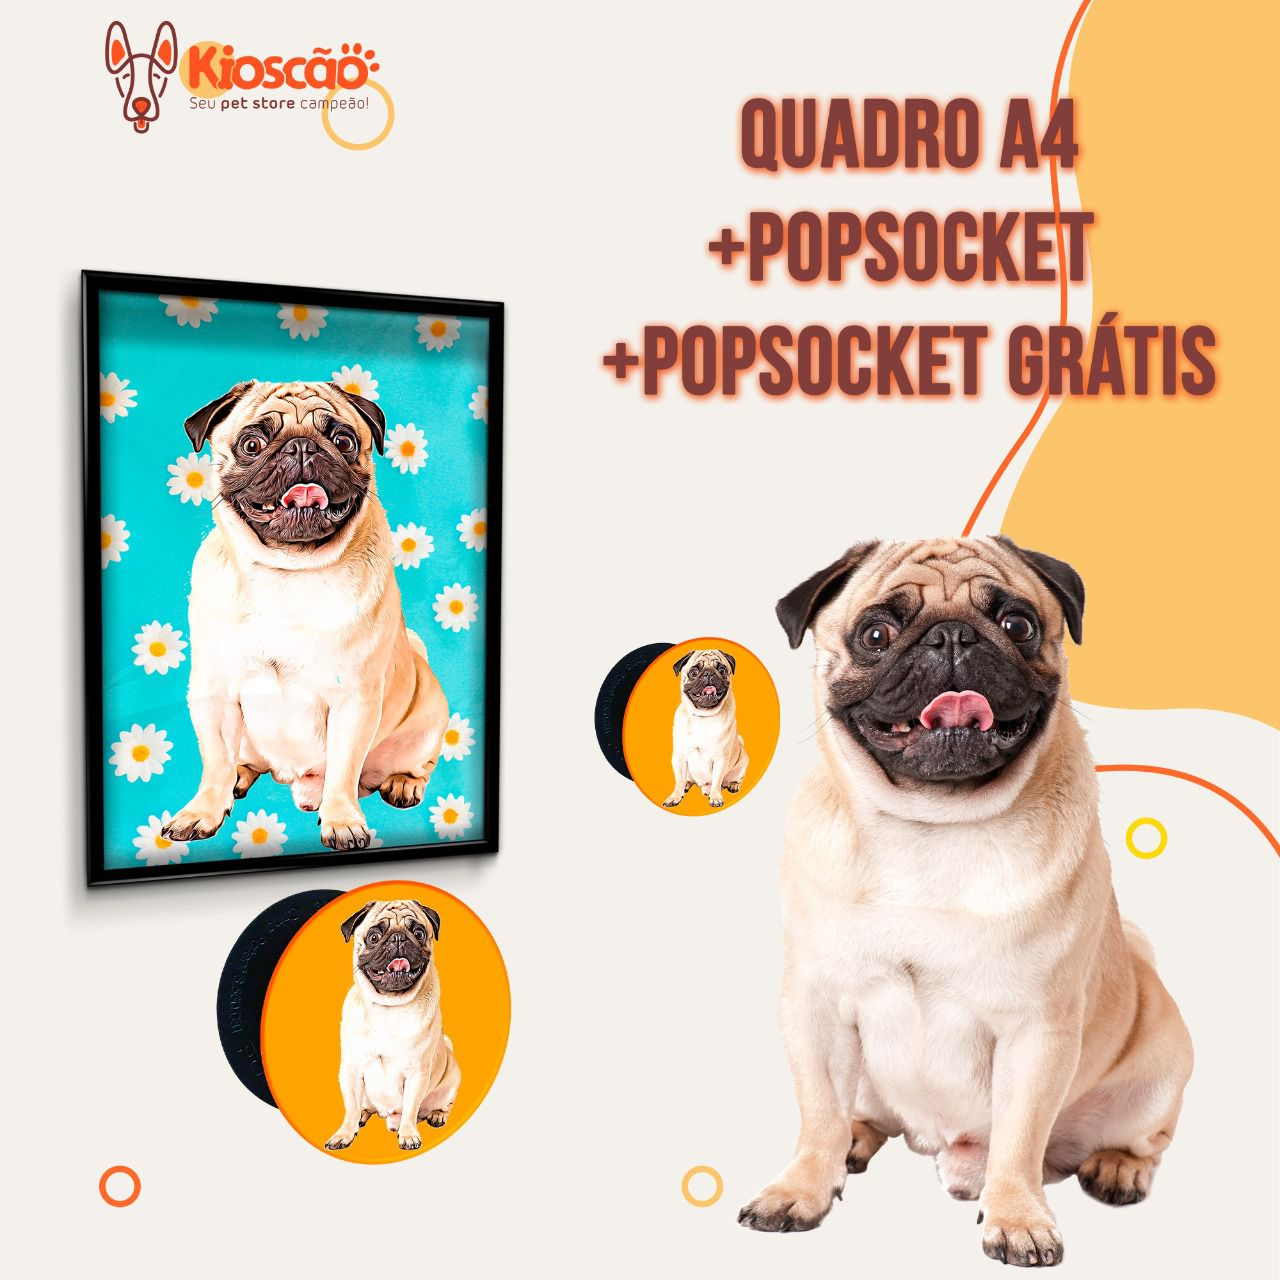 QUADRO A4 + POP SOCKET PERSONALIADO